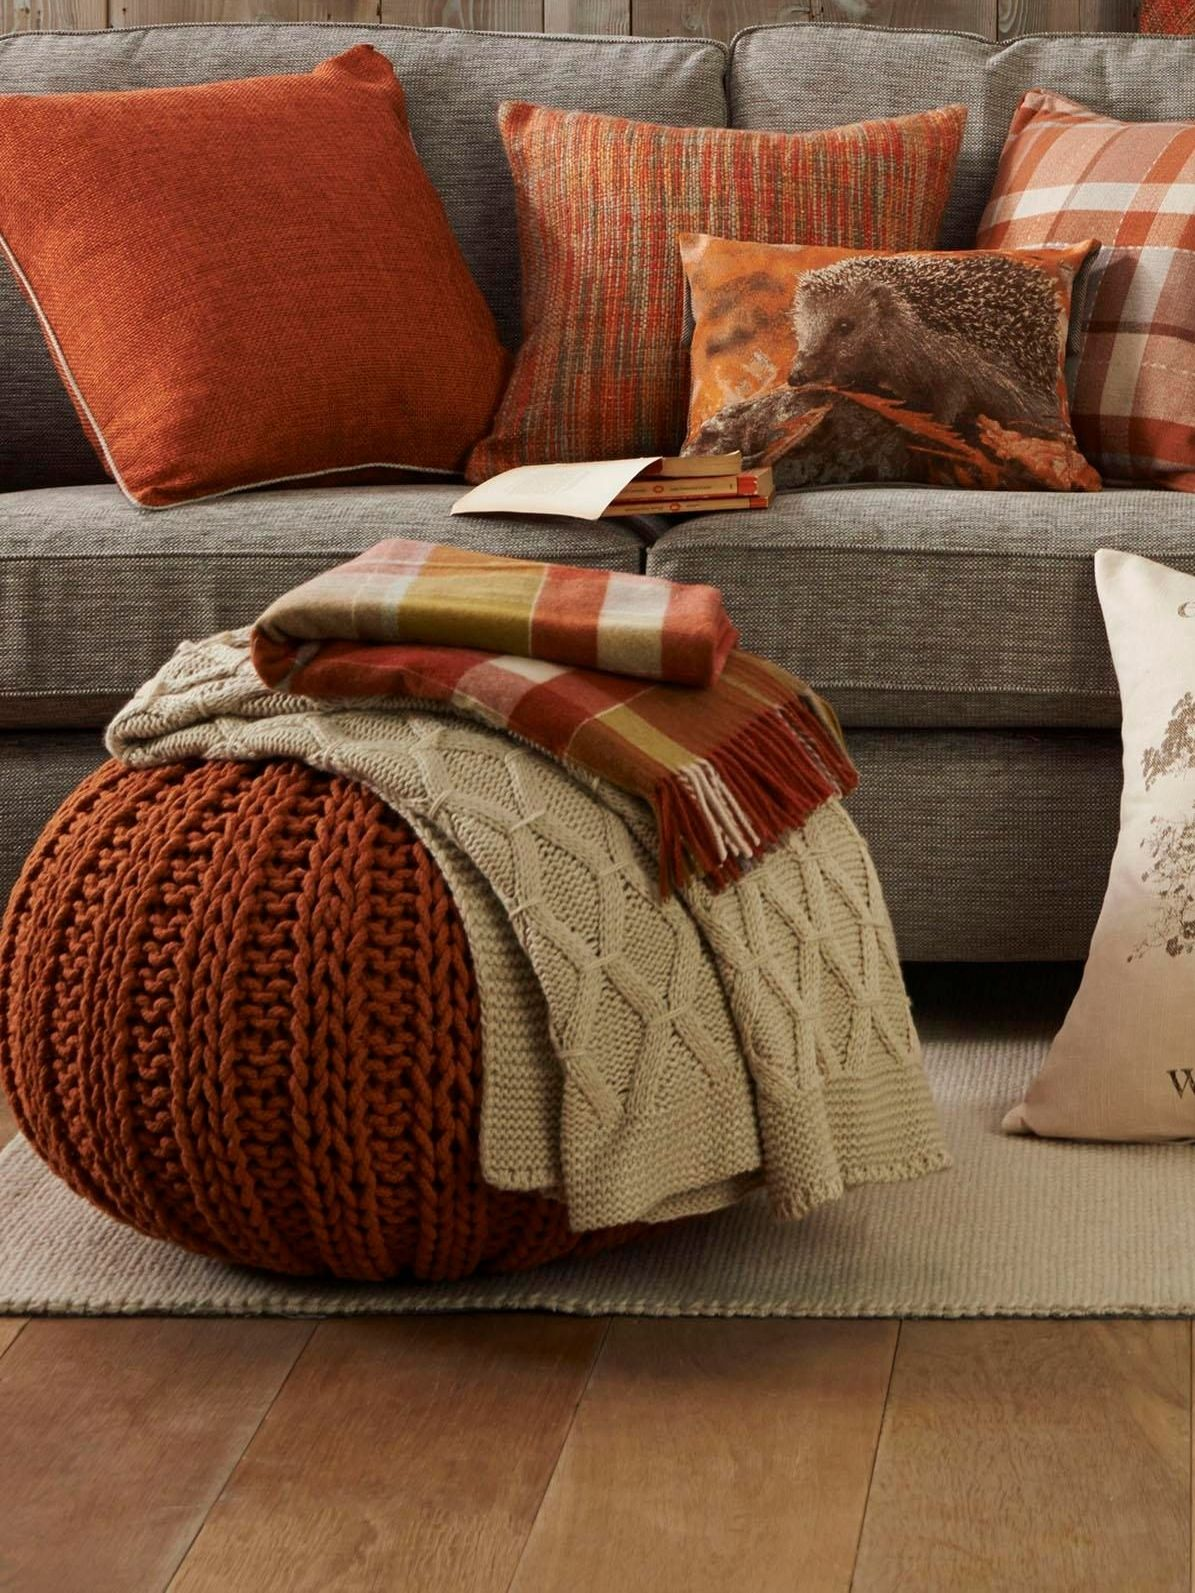 Cosy Cable Knit Light Natural Throw from Next - wish I could make this cushion.   Perfect colors for Autumn!